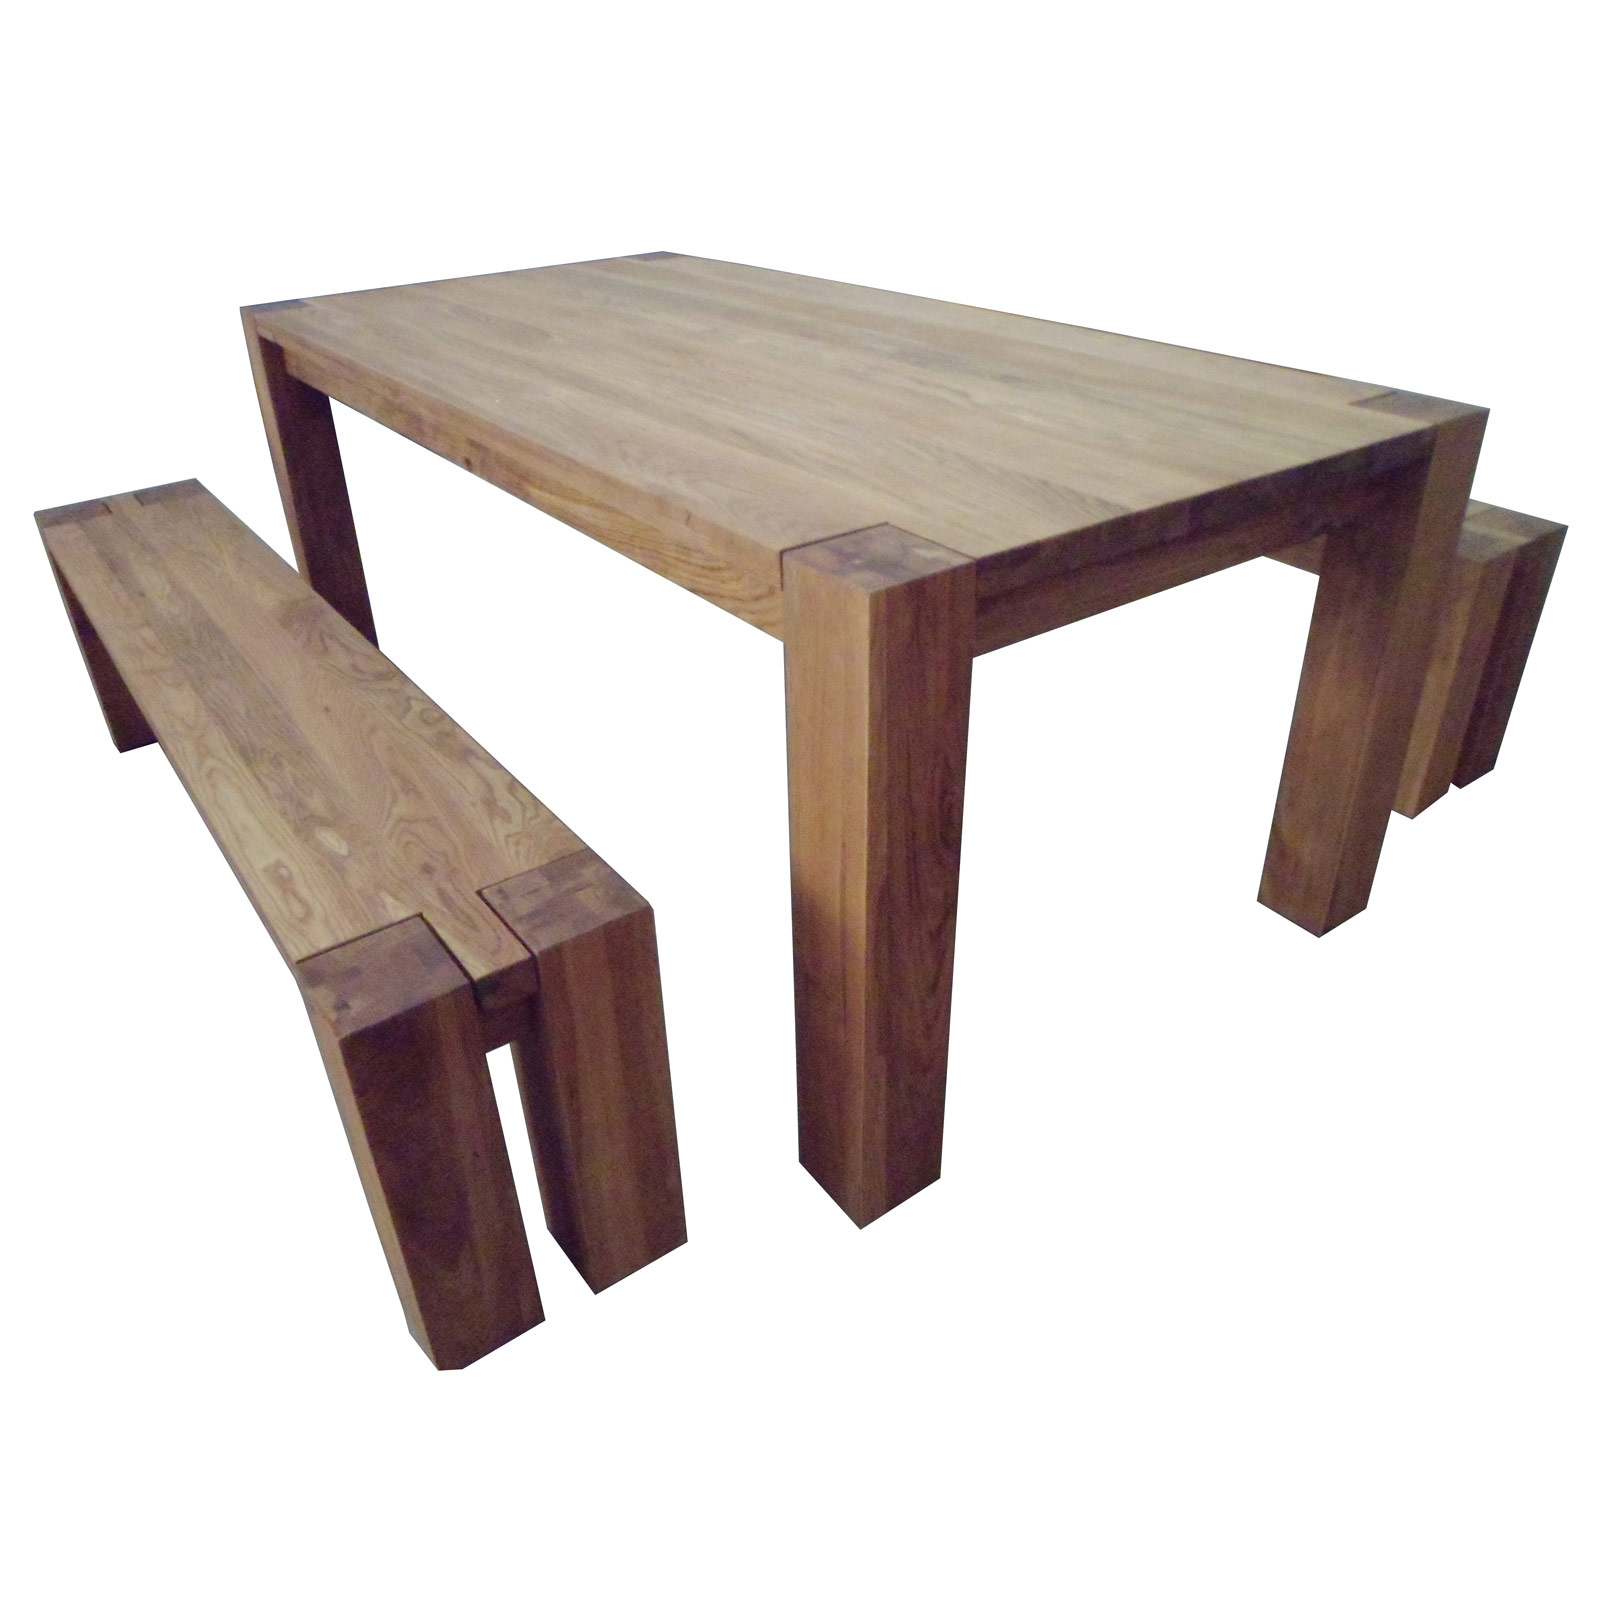 Braemar rectangular oak wood dining kitchen table for Rectangle kitchen table with bench